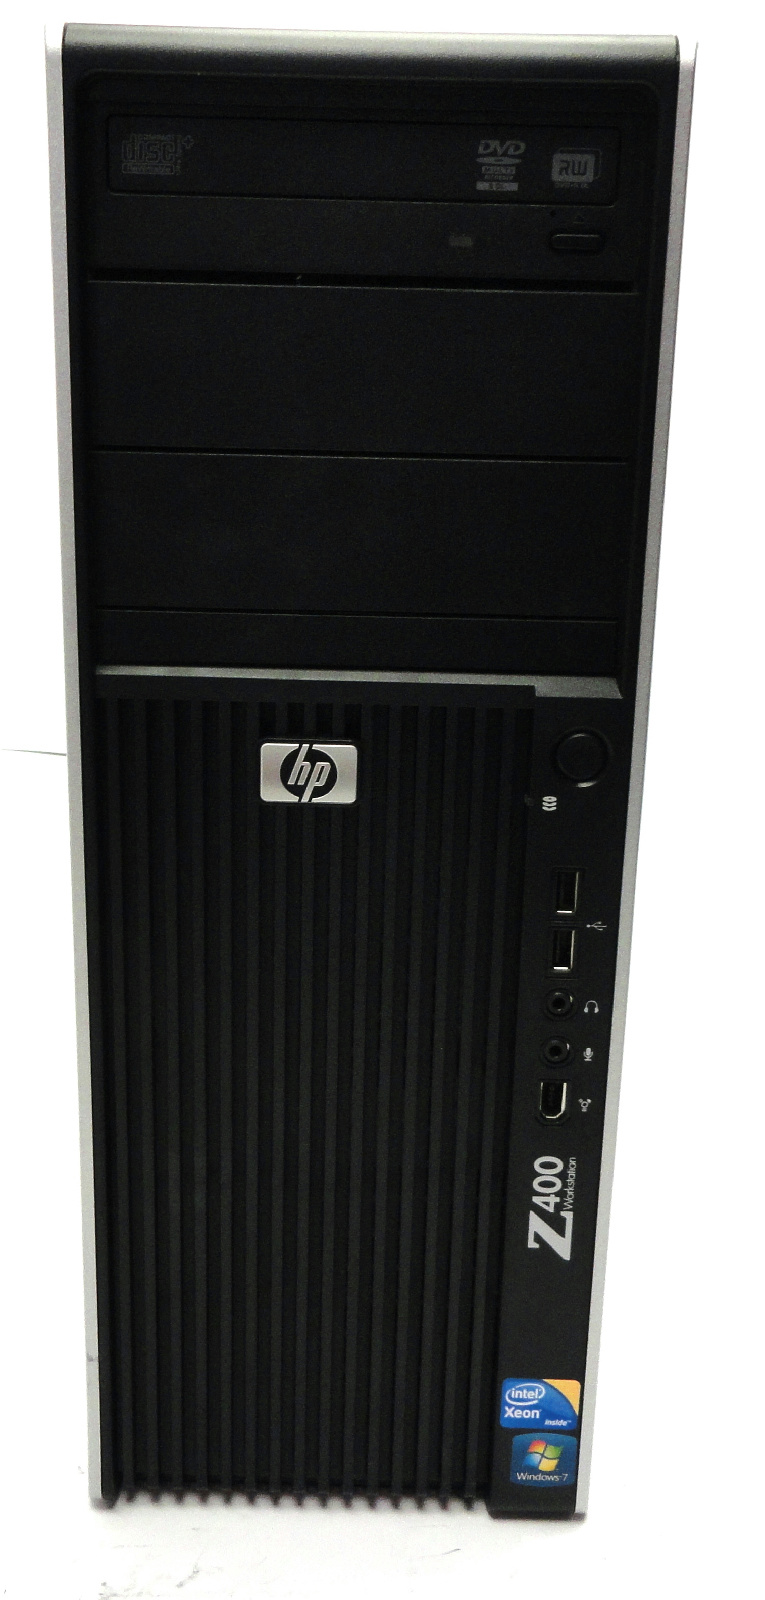 hp z400 workstation quad core xeon w3520 6gb ddr3 dvd rw. Black Bedroom Furniture Sets. Home Design Ideas